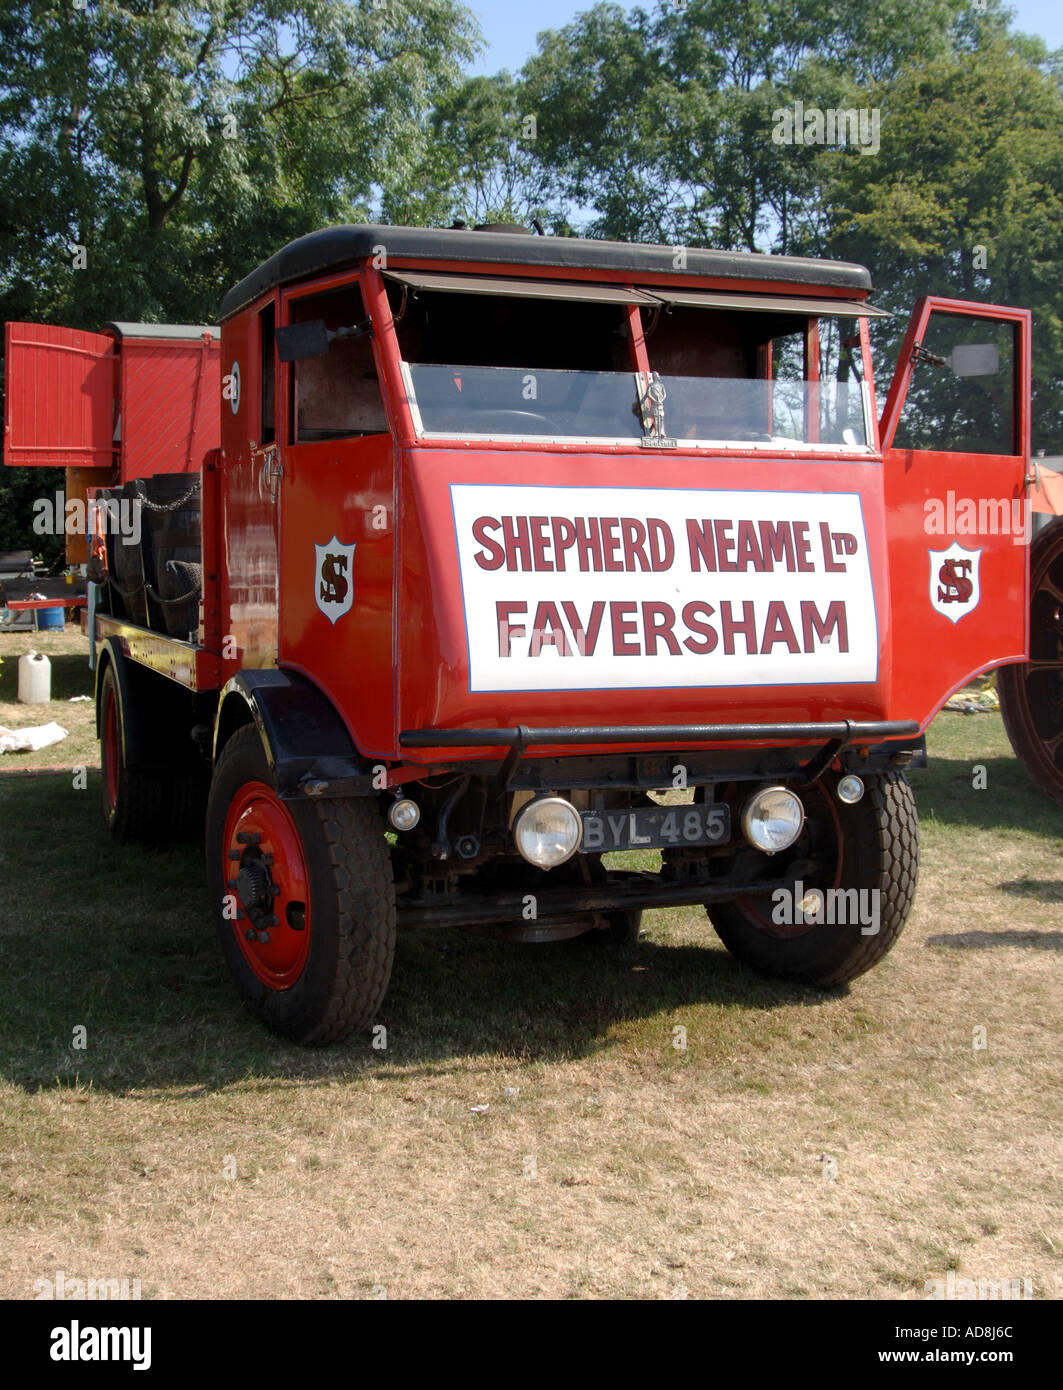 steam lorry from Shepherd Neame brewers - Stock Image